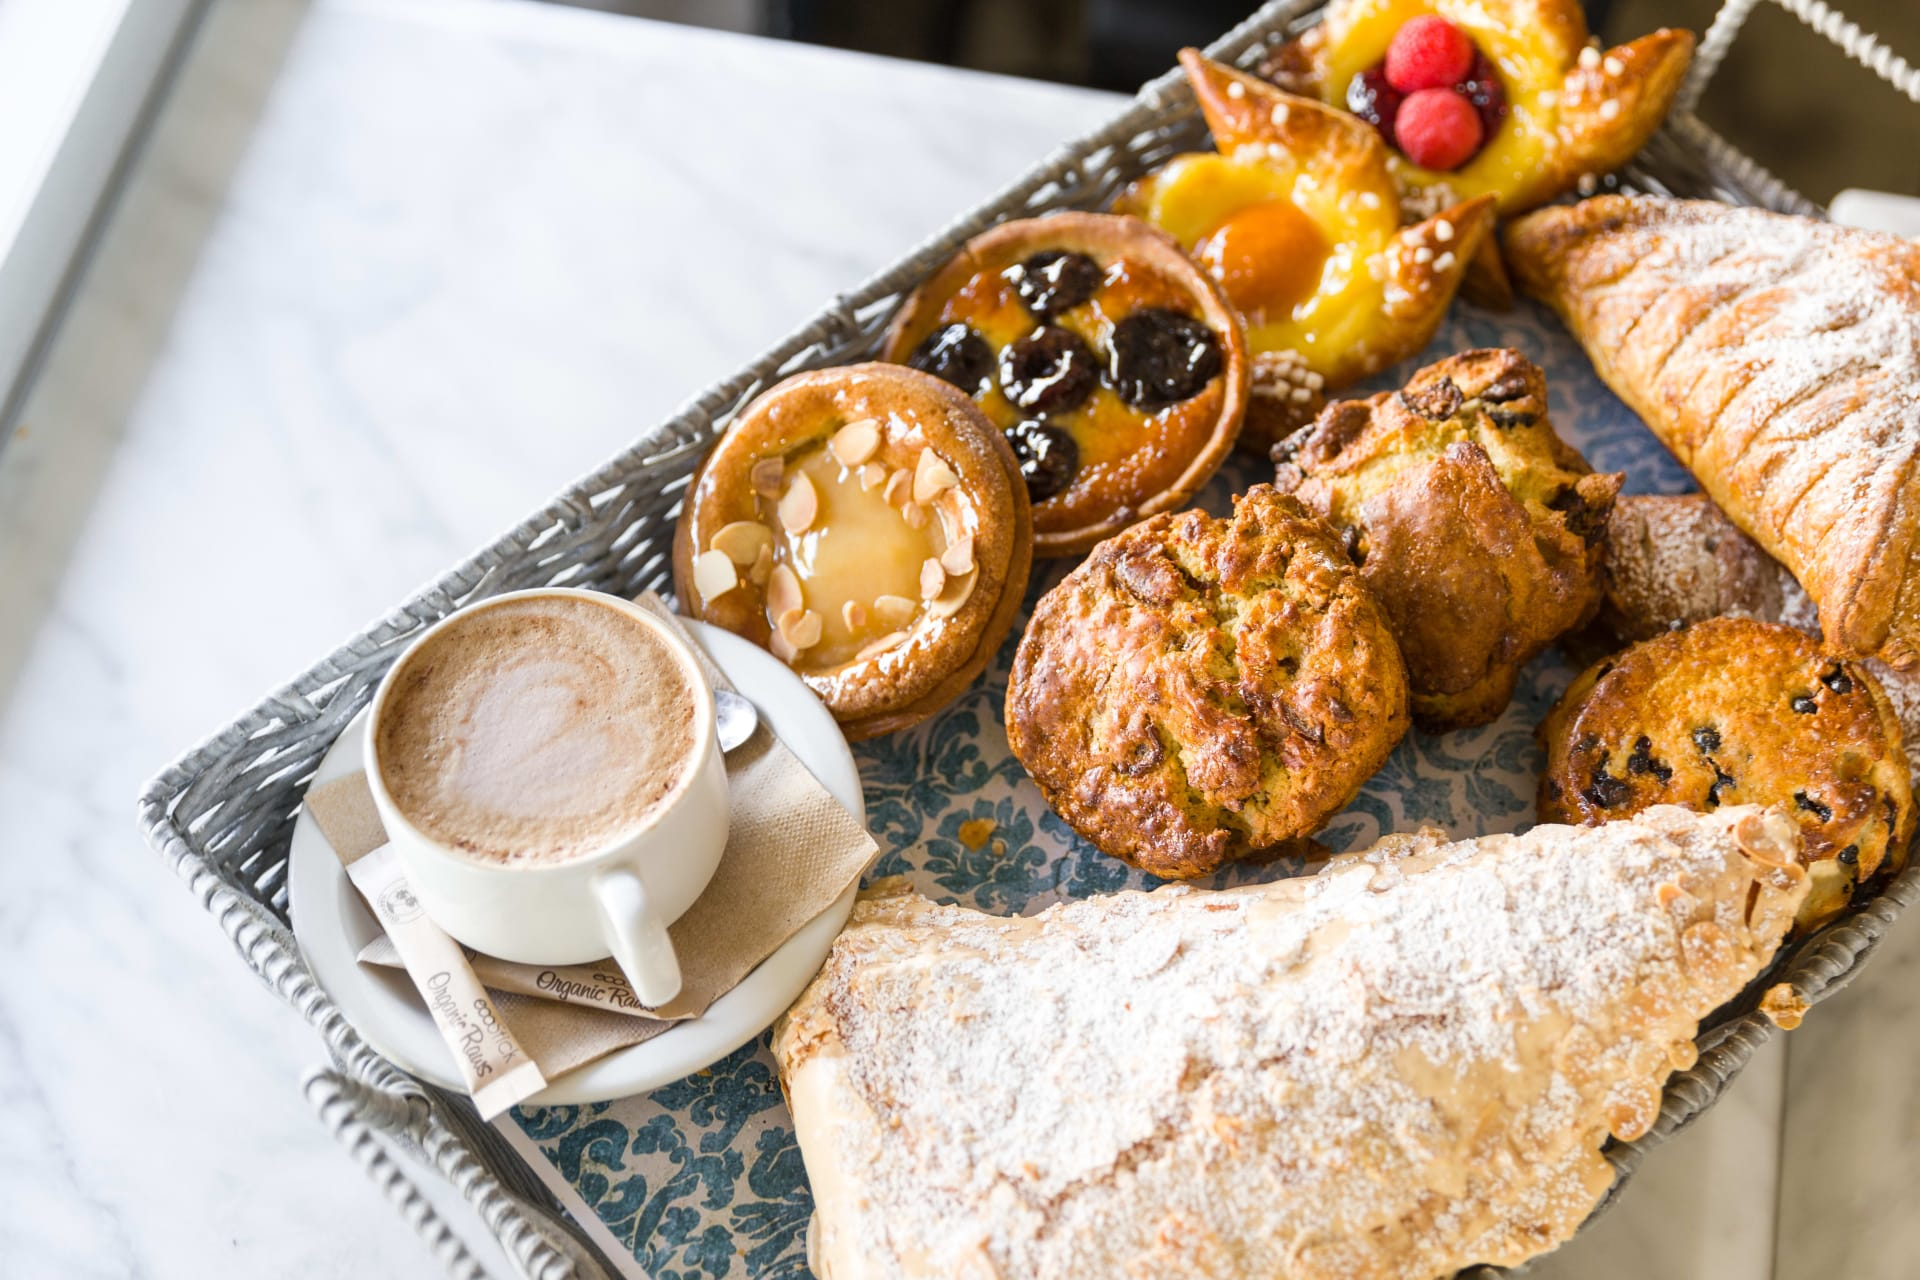 pastries and cappucino